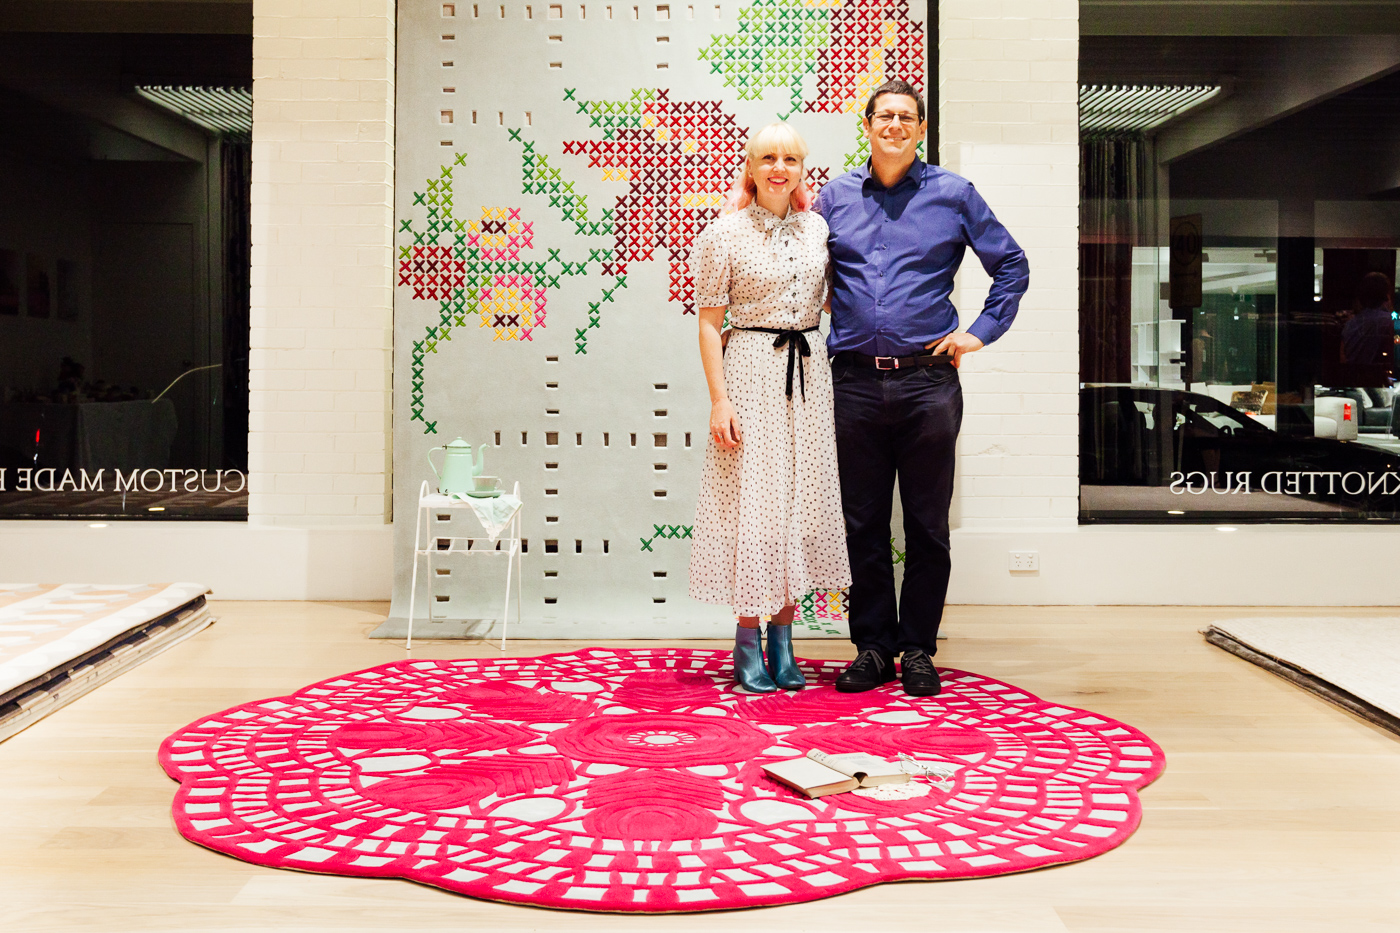 Petrina Turner and Yosi Tal of Designer Rugs |NEW AGAIN by Petrina Turner Design for Designer Rugs | The launch event